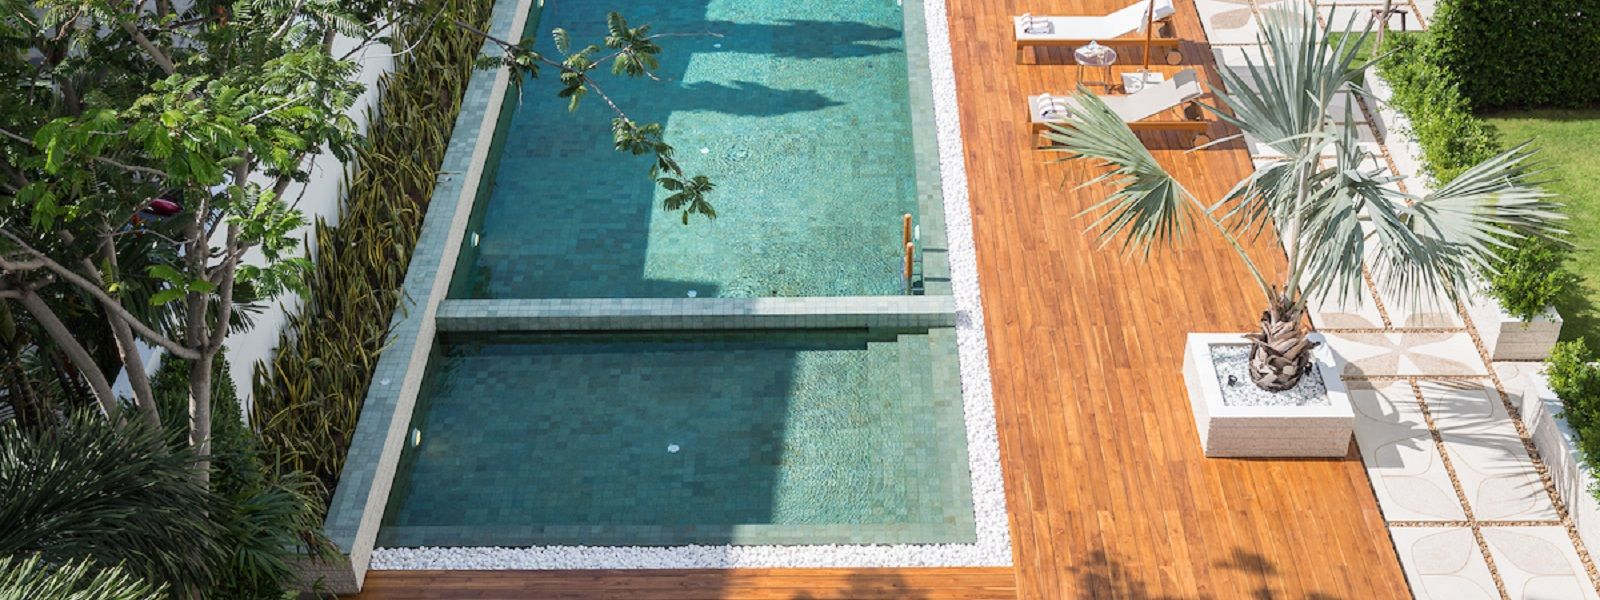 Chi Samui - The Residence by Kalara Developments Co., Ltd.